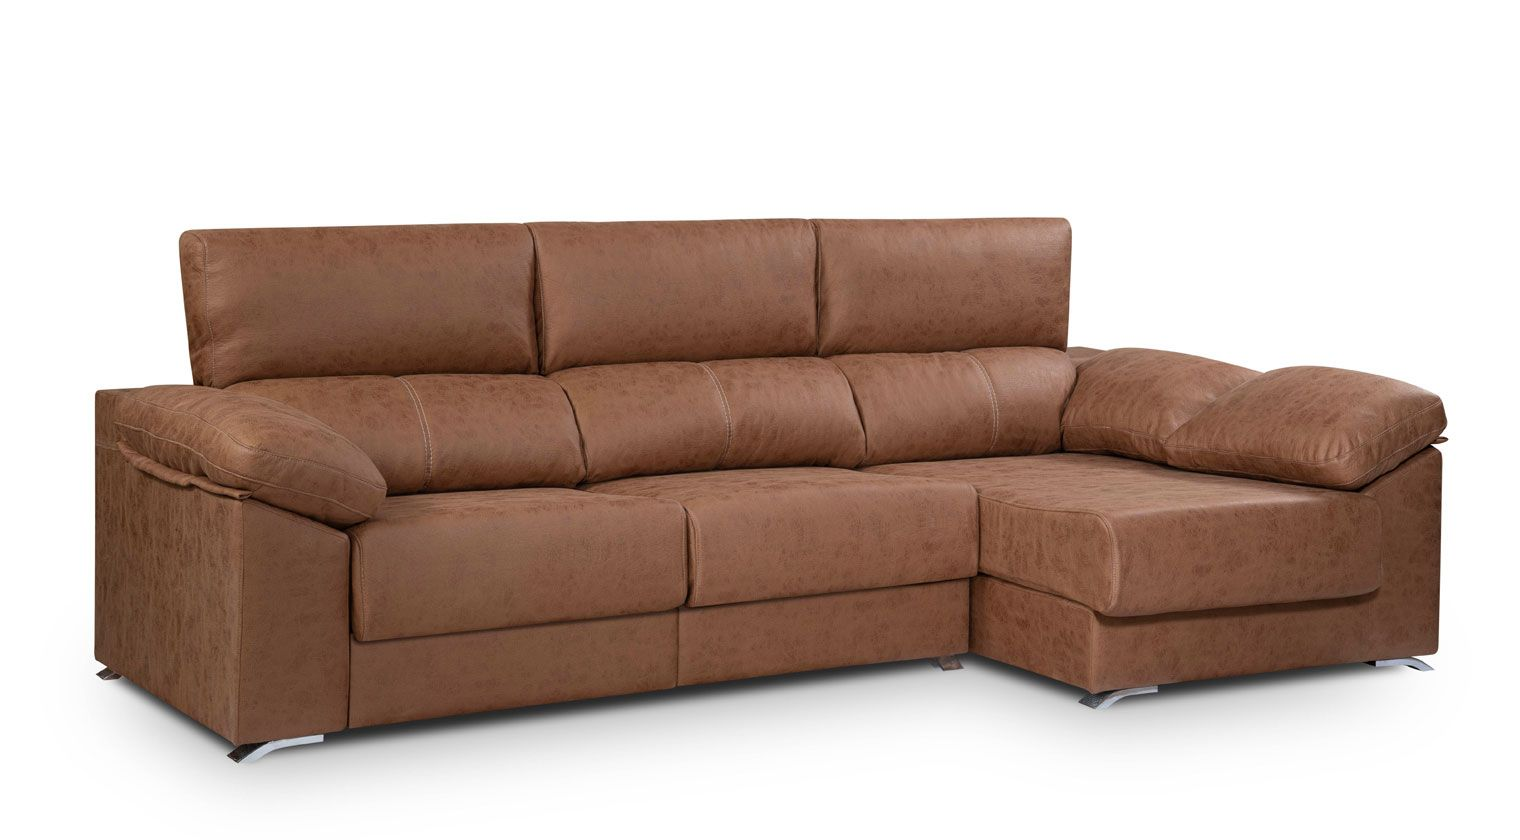 Comprar chaise longue tela lleida mod sofa 4 plazas chaise for Sofas baratos asturias